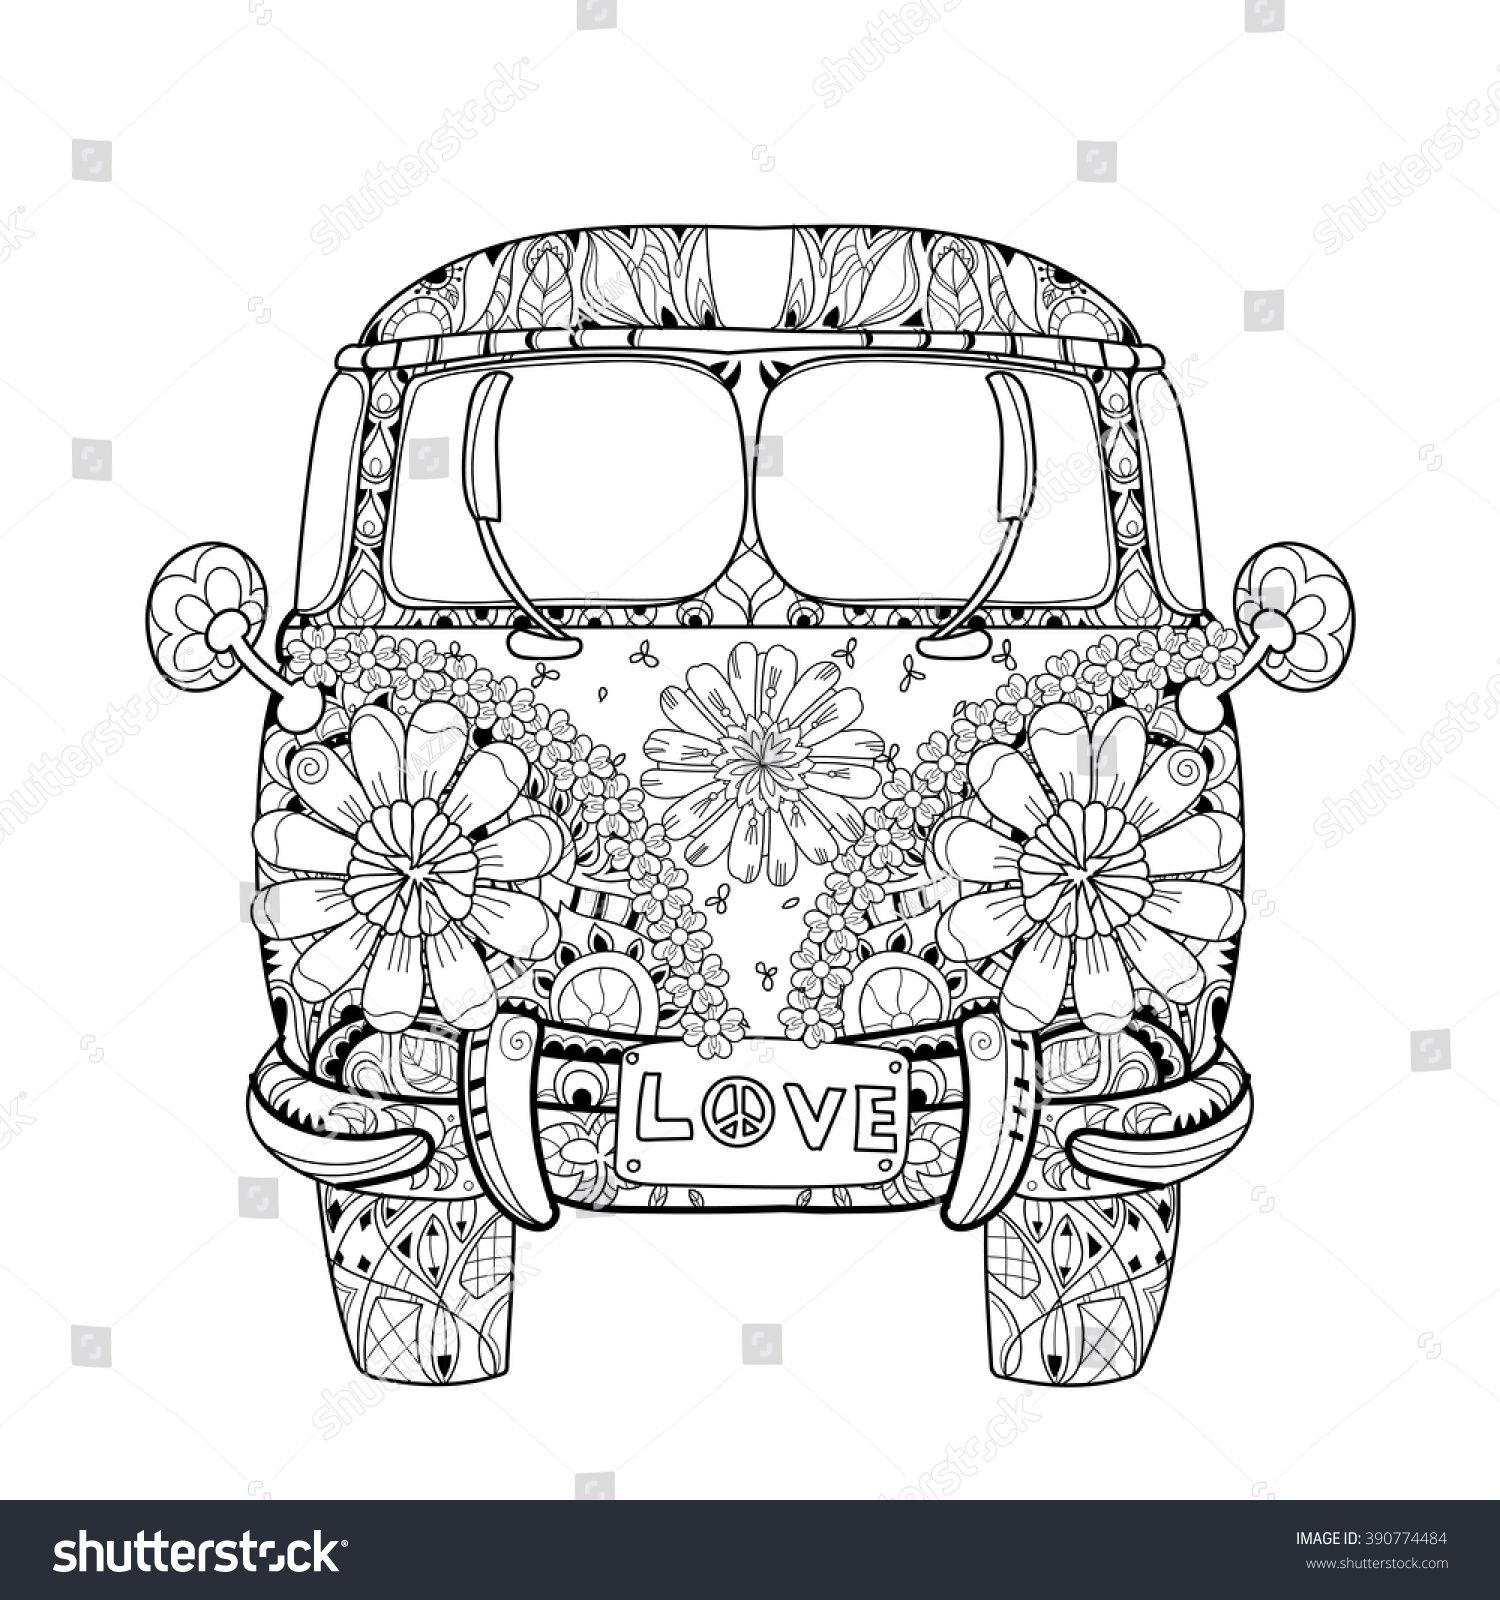 Hand drawn doodle outline retro bus travel decorated with ornaments front view Vector zentangle illustration Floral ornament Sketch for tattoo or coloring pages Boho style  is part of Coloring pages - Find Hand drawn doodle outline retro bus travel decorated with ornaments front view Vector zentangle illustration Floral ornament Sketch for tattoo or coloring pages Boho style stock vectors and royalty free photos in HD  Explore millions of stock photos, images, illustrations, and vectors in the Shutterstock creative collection  1000s of new pictures added daily